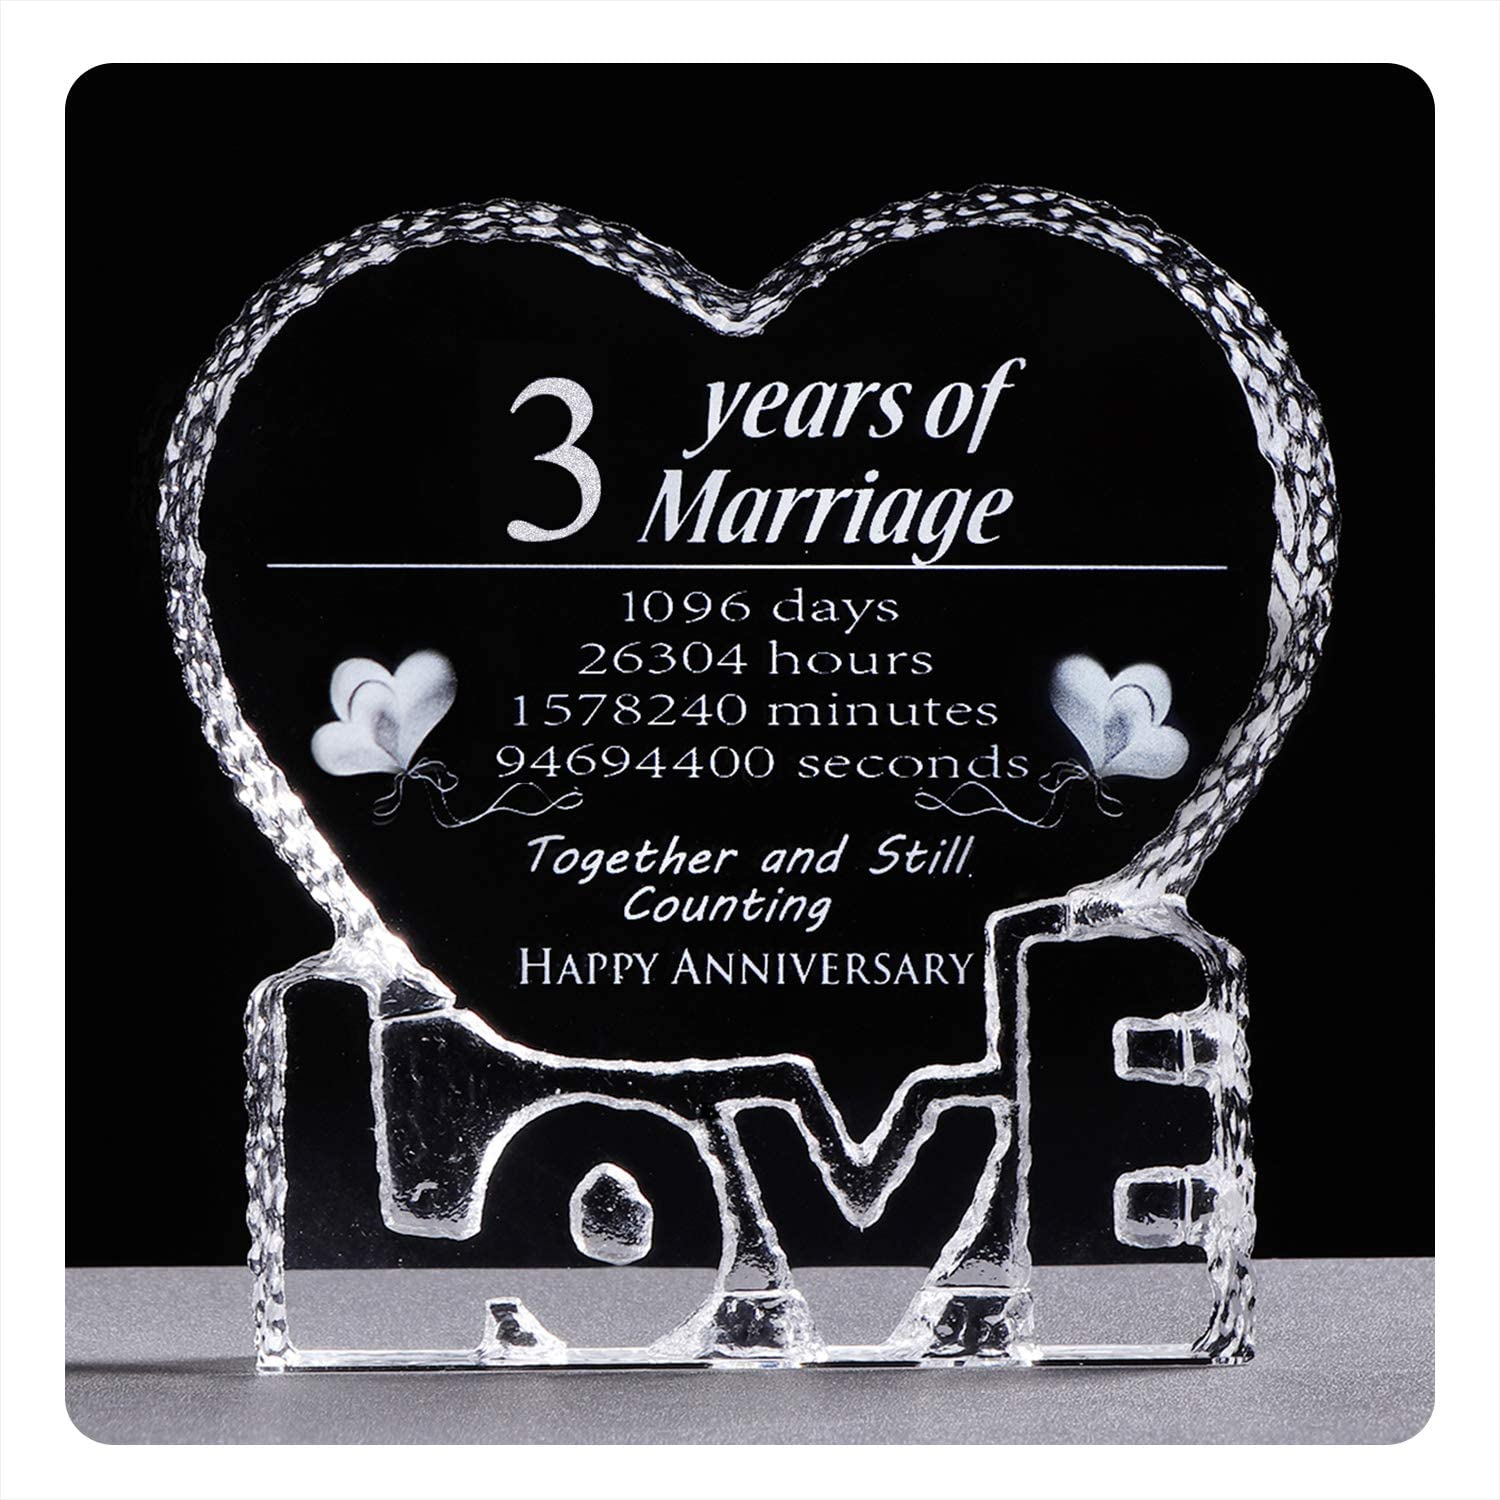 Amazon Com Ywhl 3 Year 3rd Wedding Anniversary Crystal Paperweight Sculpture Keepsake Gifts For Her Wife Girlfriend Him Husband 3 Year Office Products